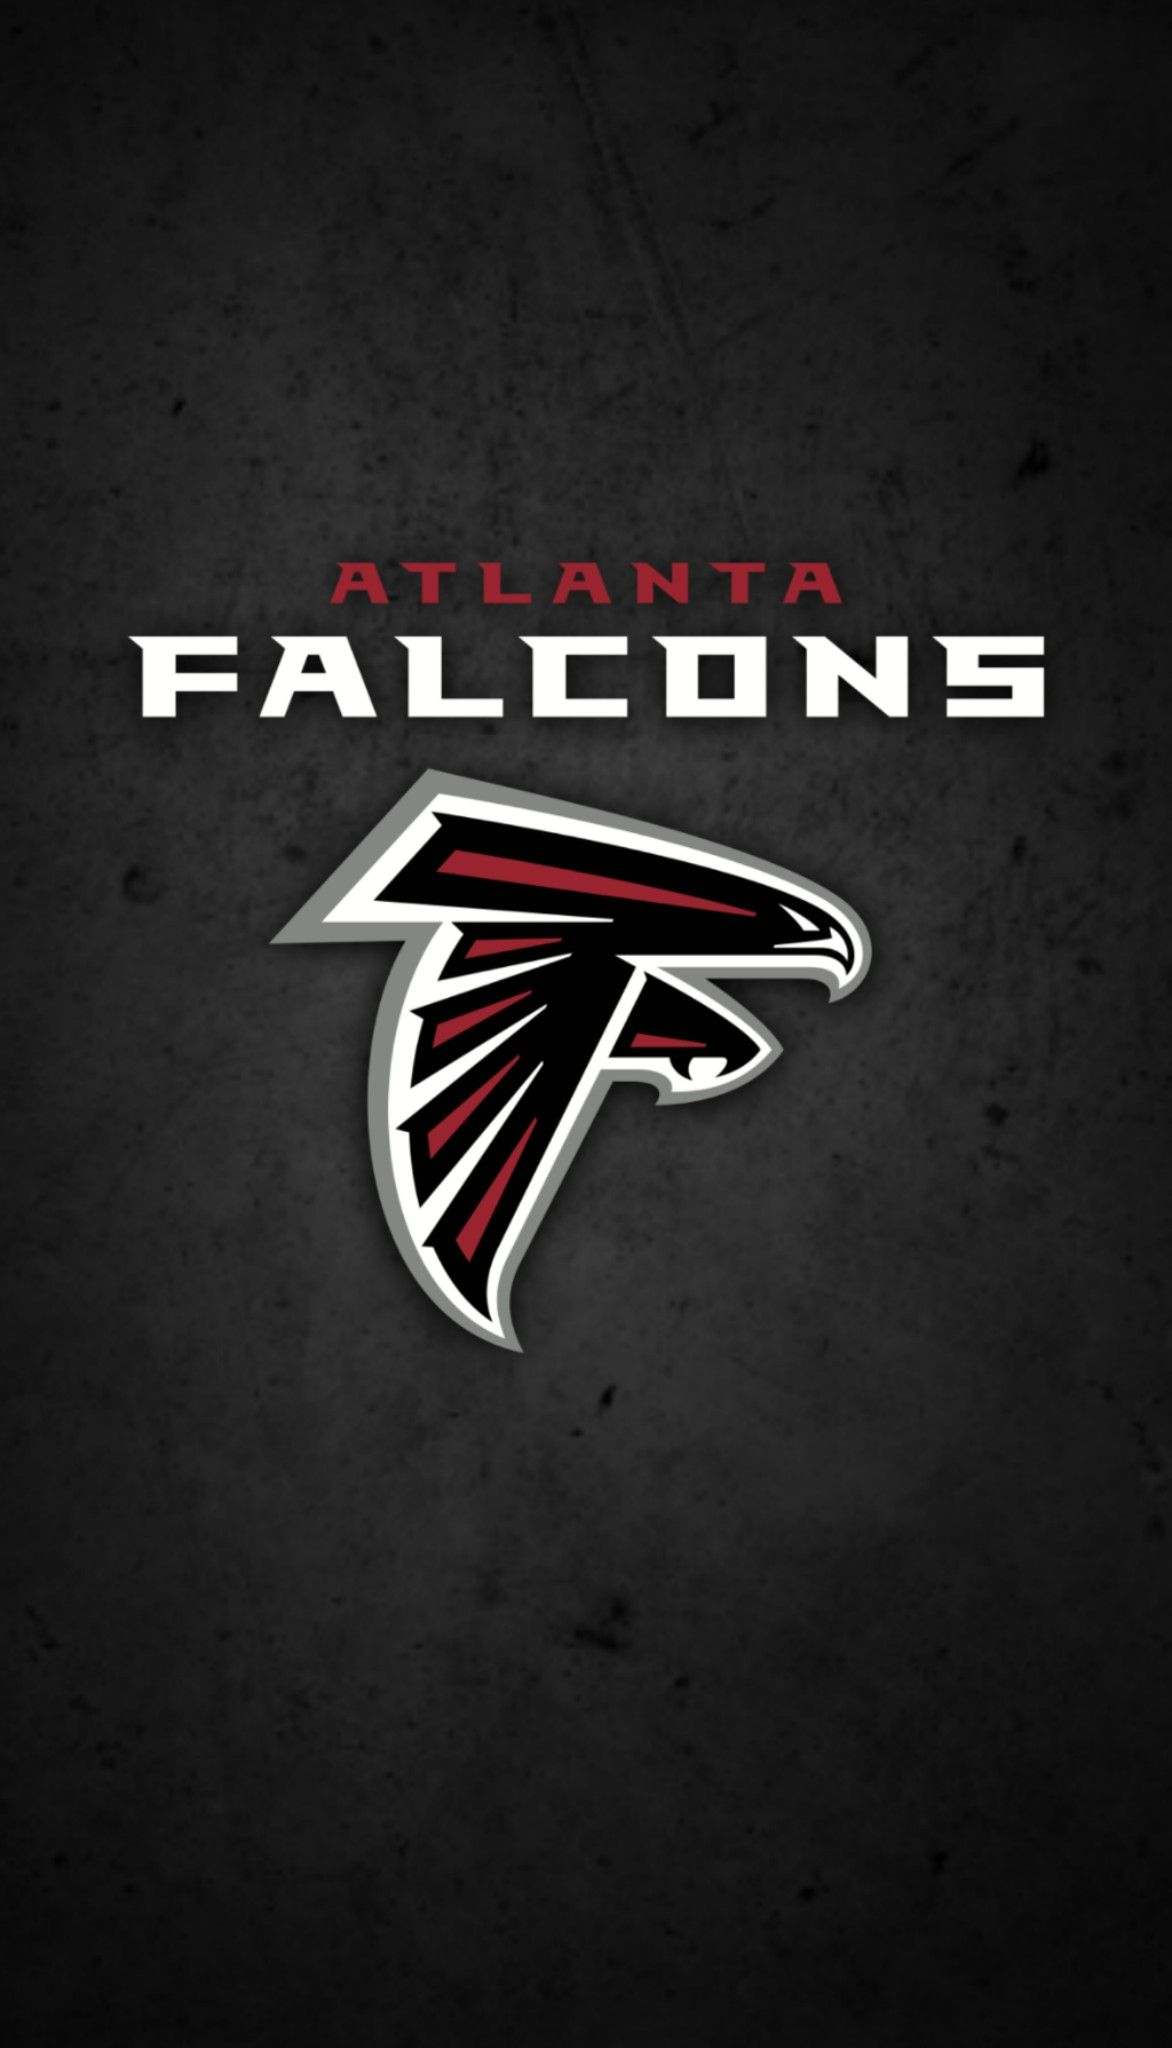 Pin By Lindsey Yopp On Atlanta Falcons Wallpaper In 2020 Atlanta Falcons Football Atlanta Falcons Wallpaper Atlanta Falcons Logo